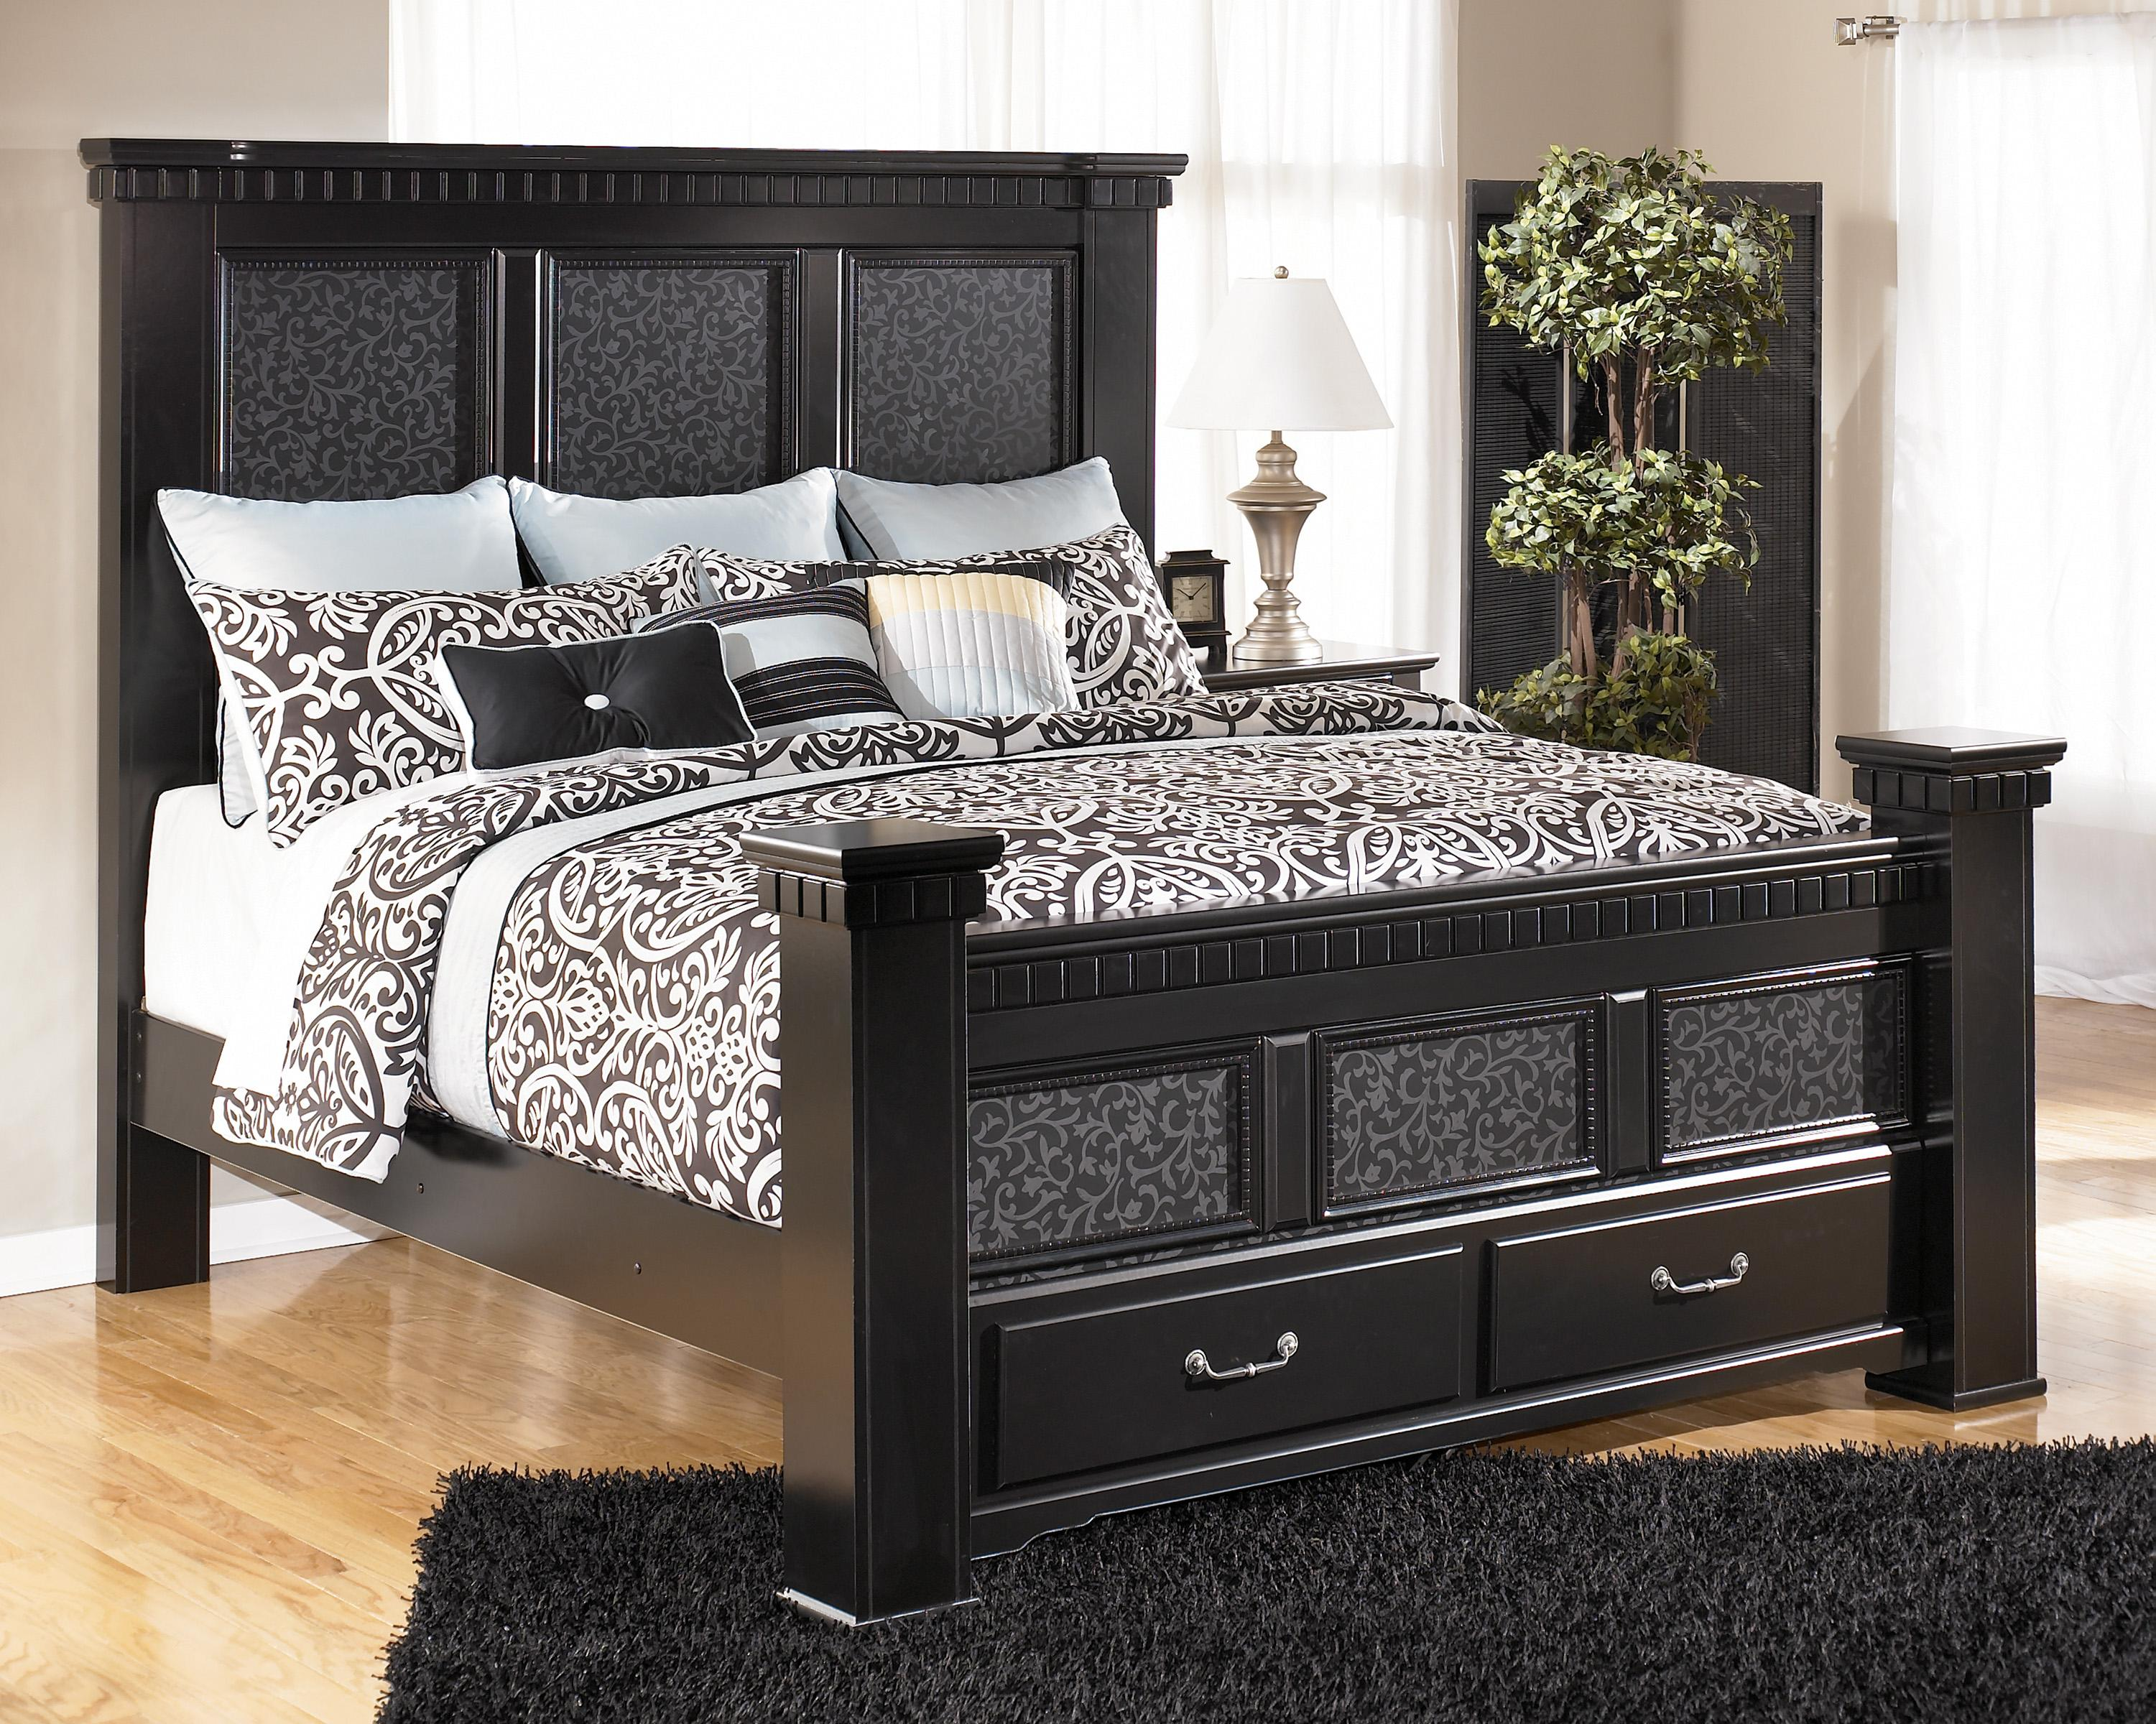 Signature Design by Ashley Cavallino King Mansion Bed with Storage Footboard - Item Number: B291-158+166S+70+99